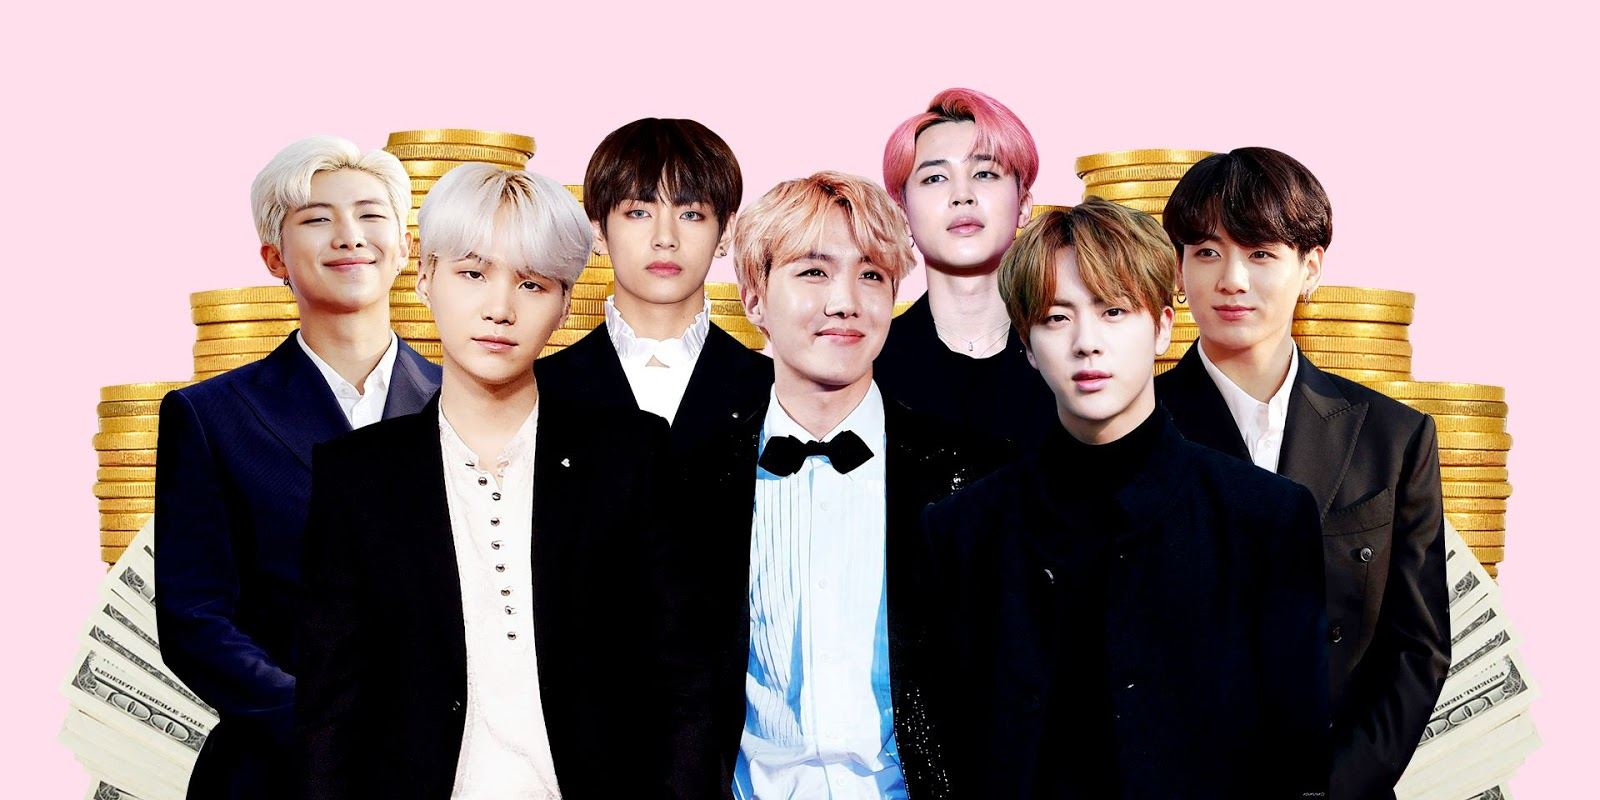 The Top Richest K-Pop Boy Bands 2020: BTS #1